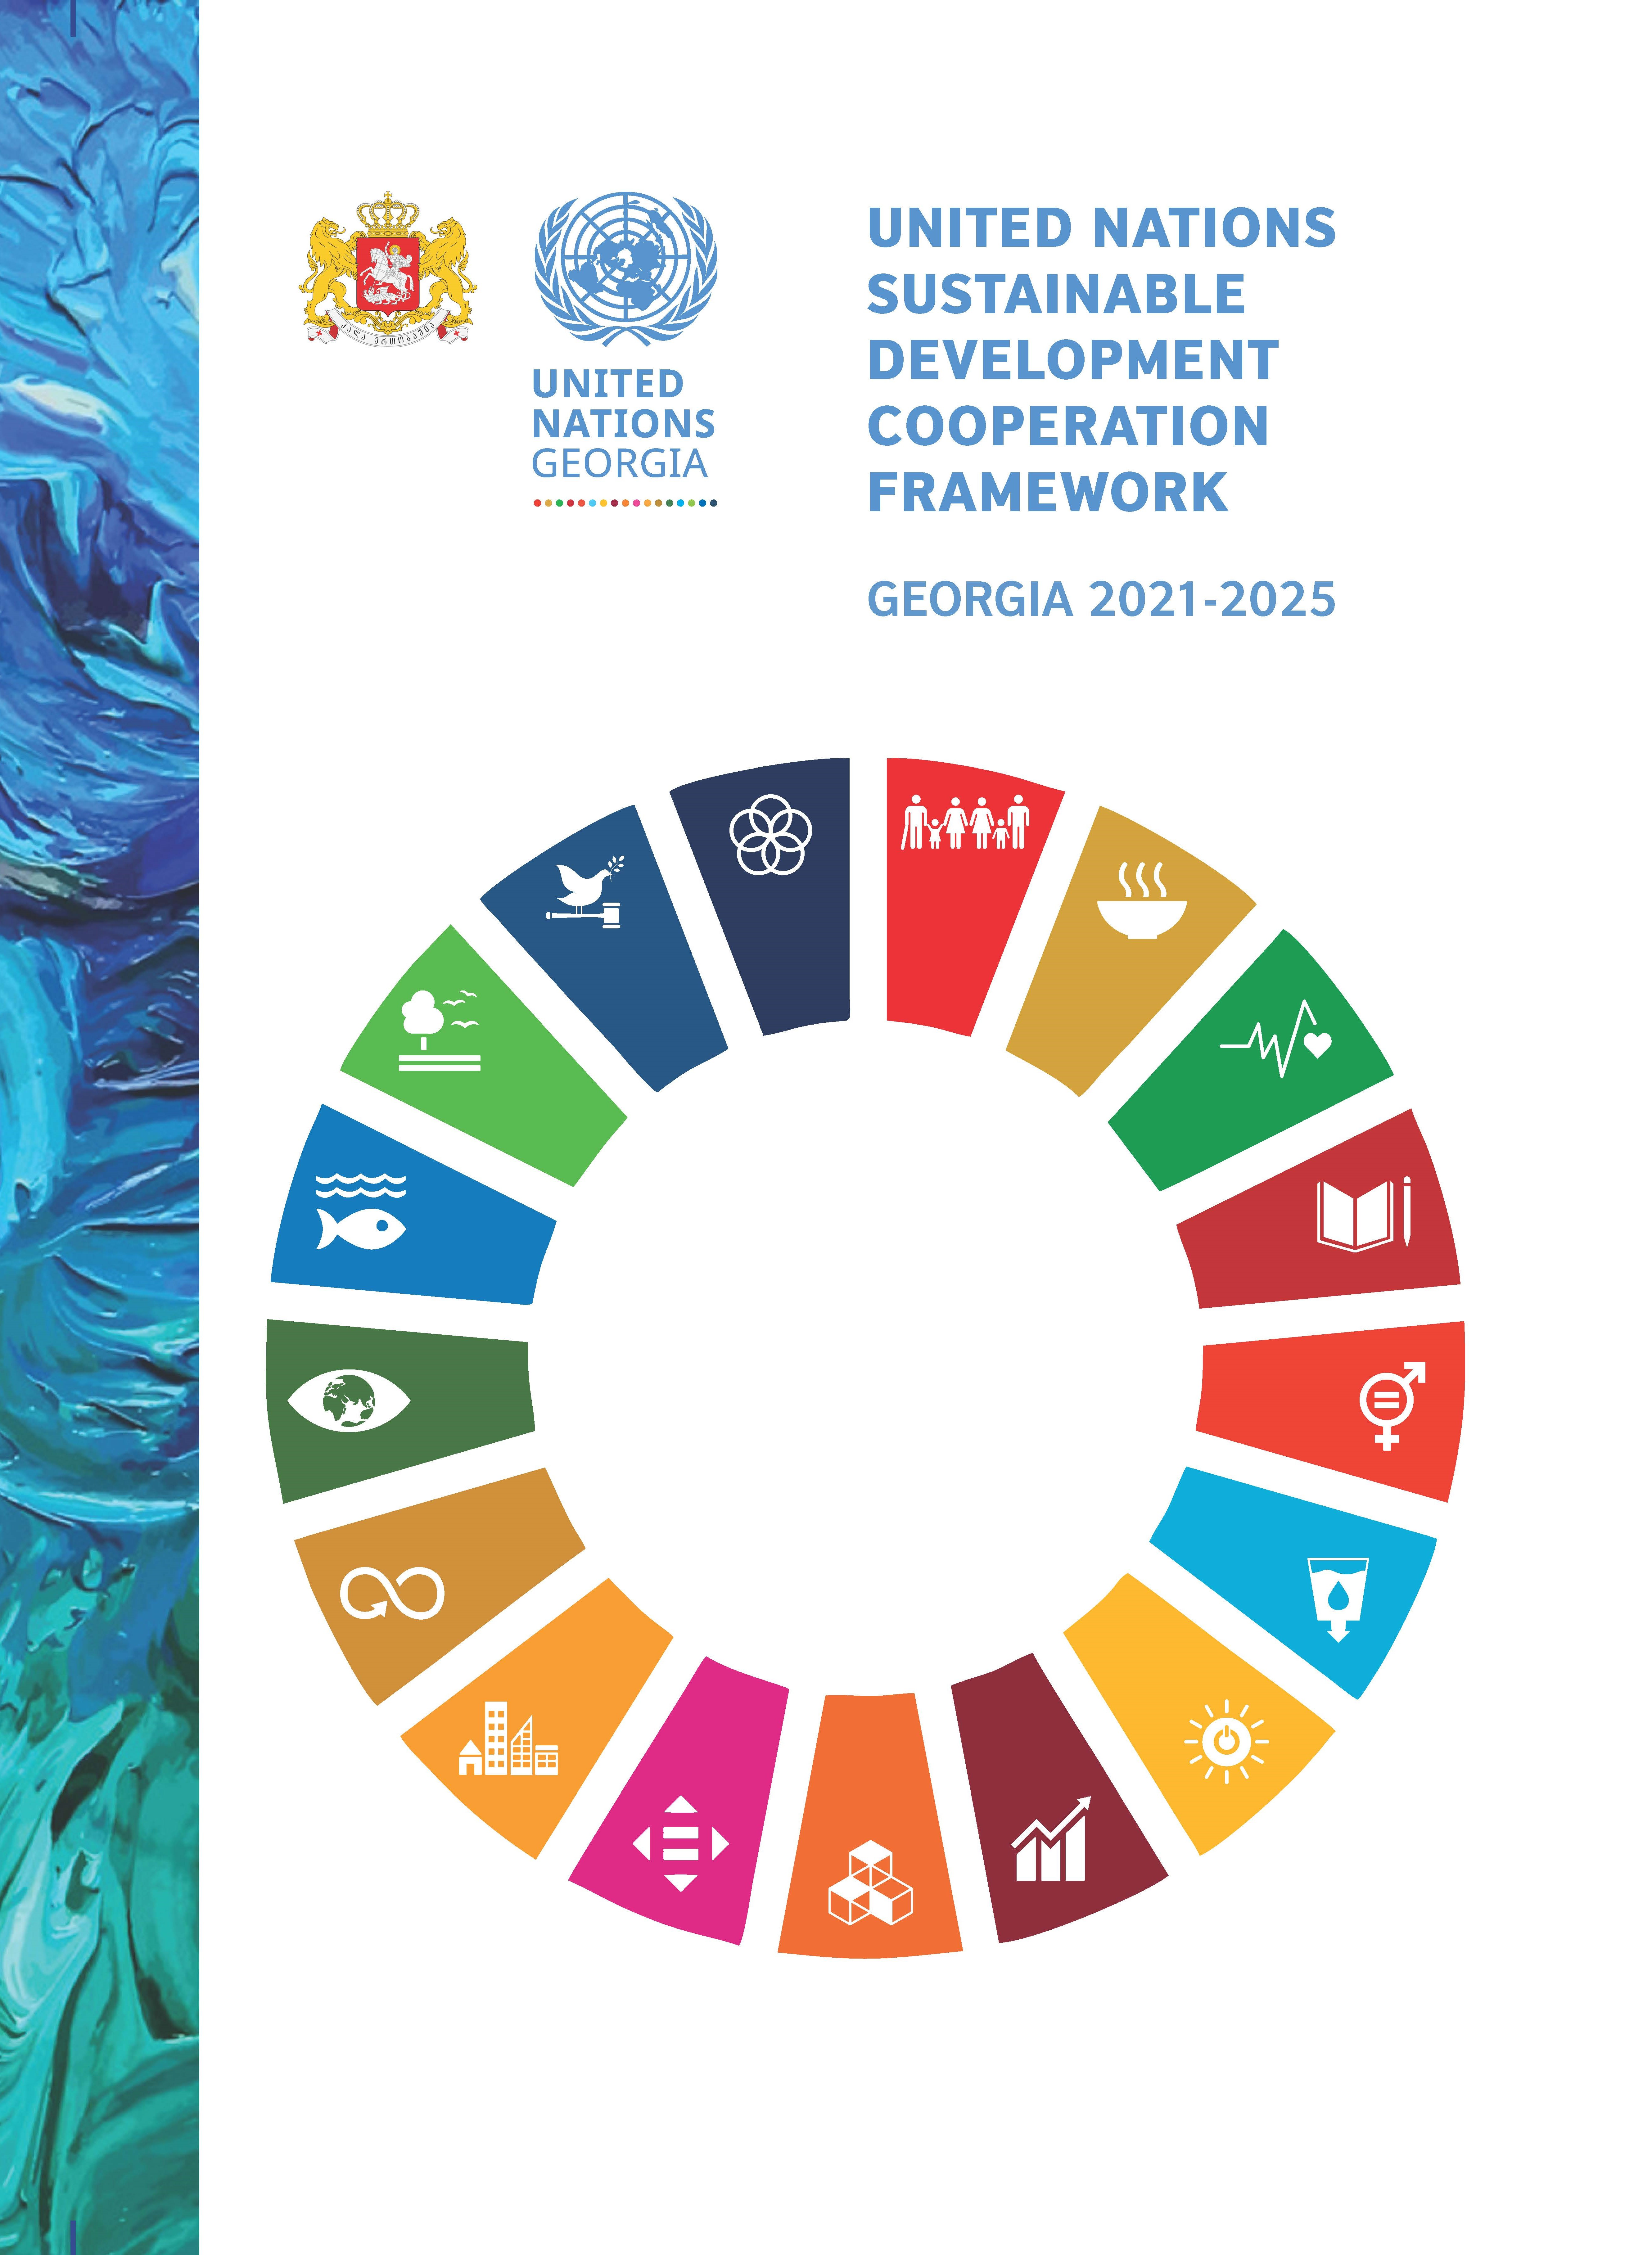 The United Nations Sustainable Development Cooperation Framework (UNSDCF) for 2021-2025